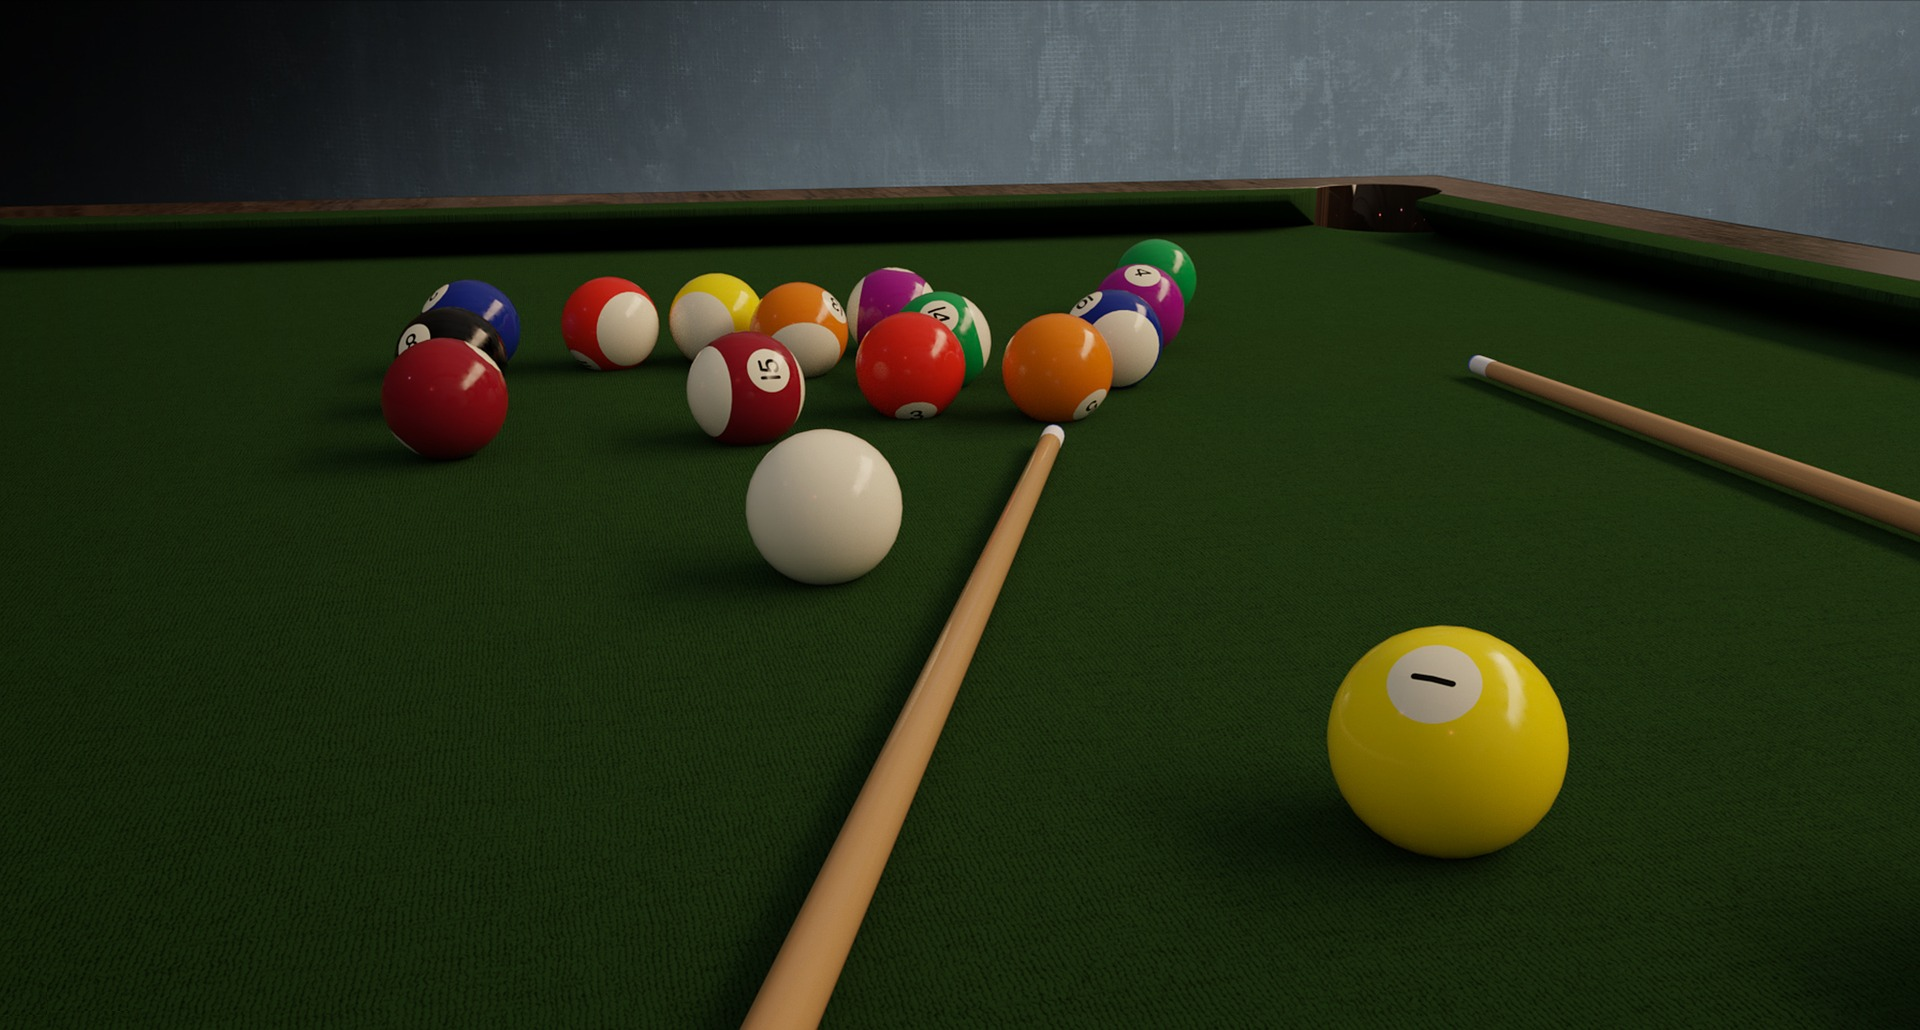 Photo of a pool table and balls and stick.